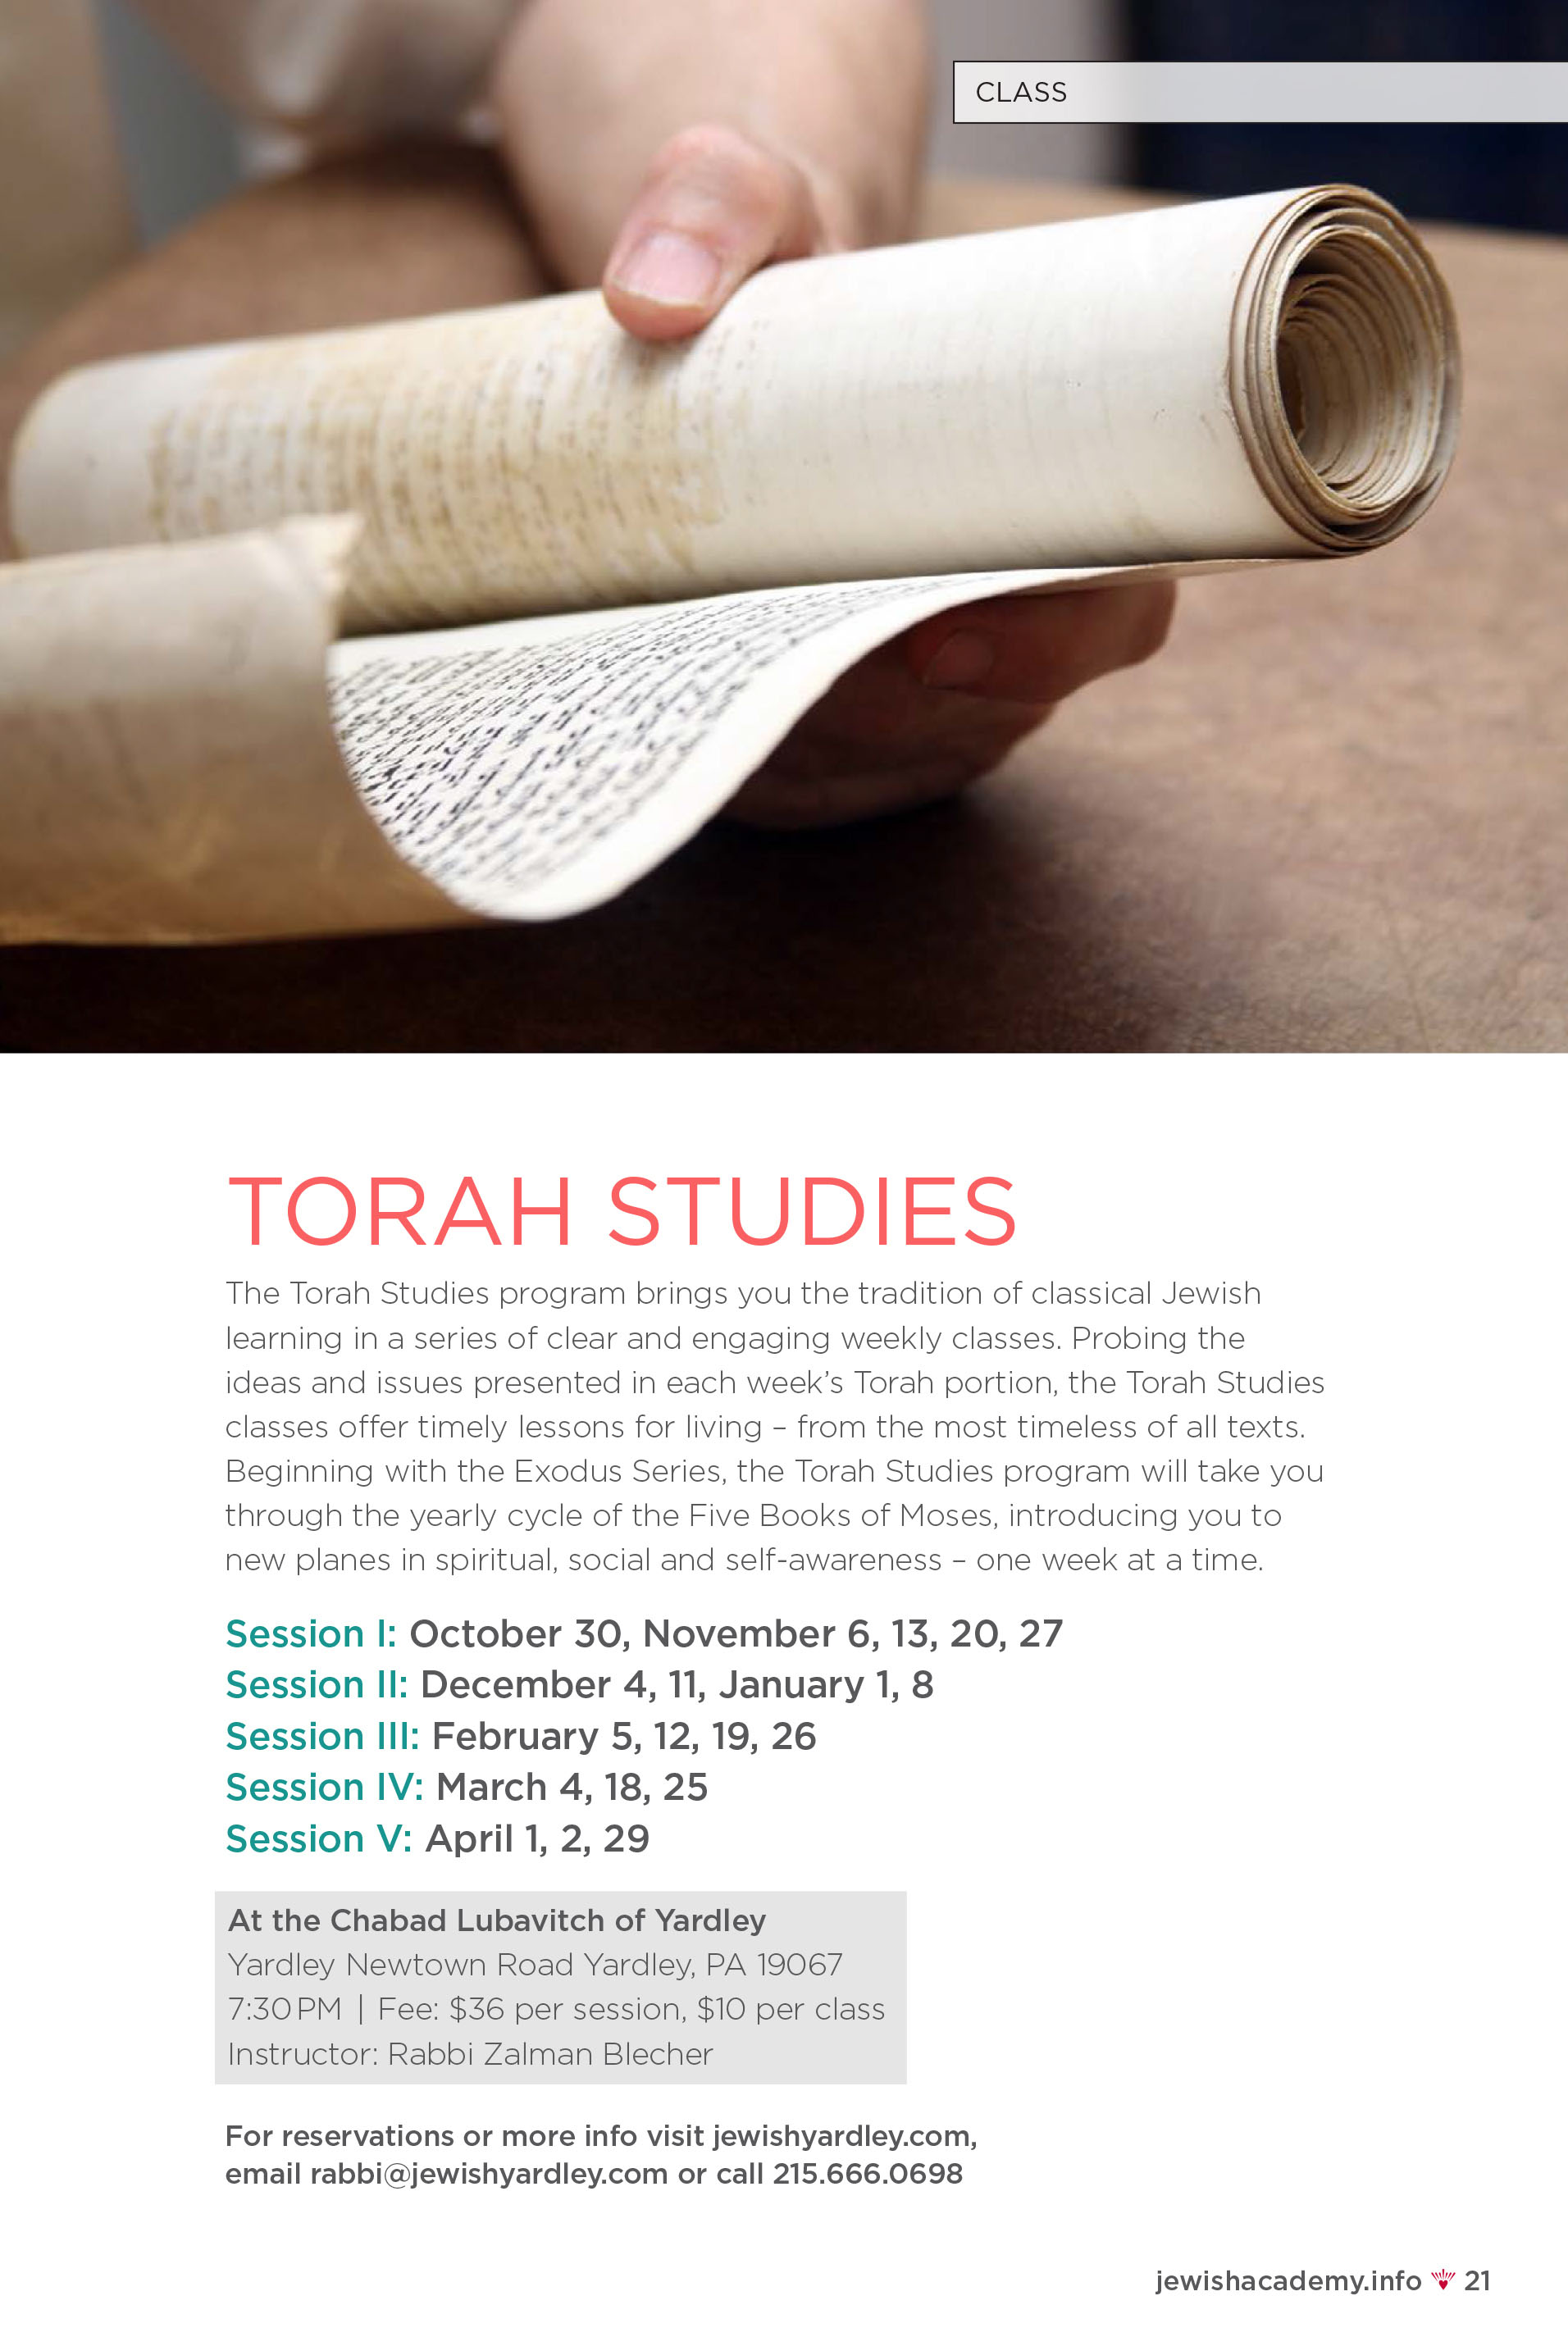 Torah Studies by Rabbi Zalman Blecher